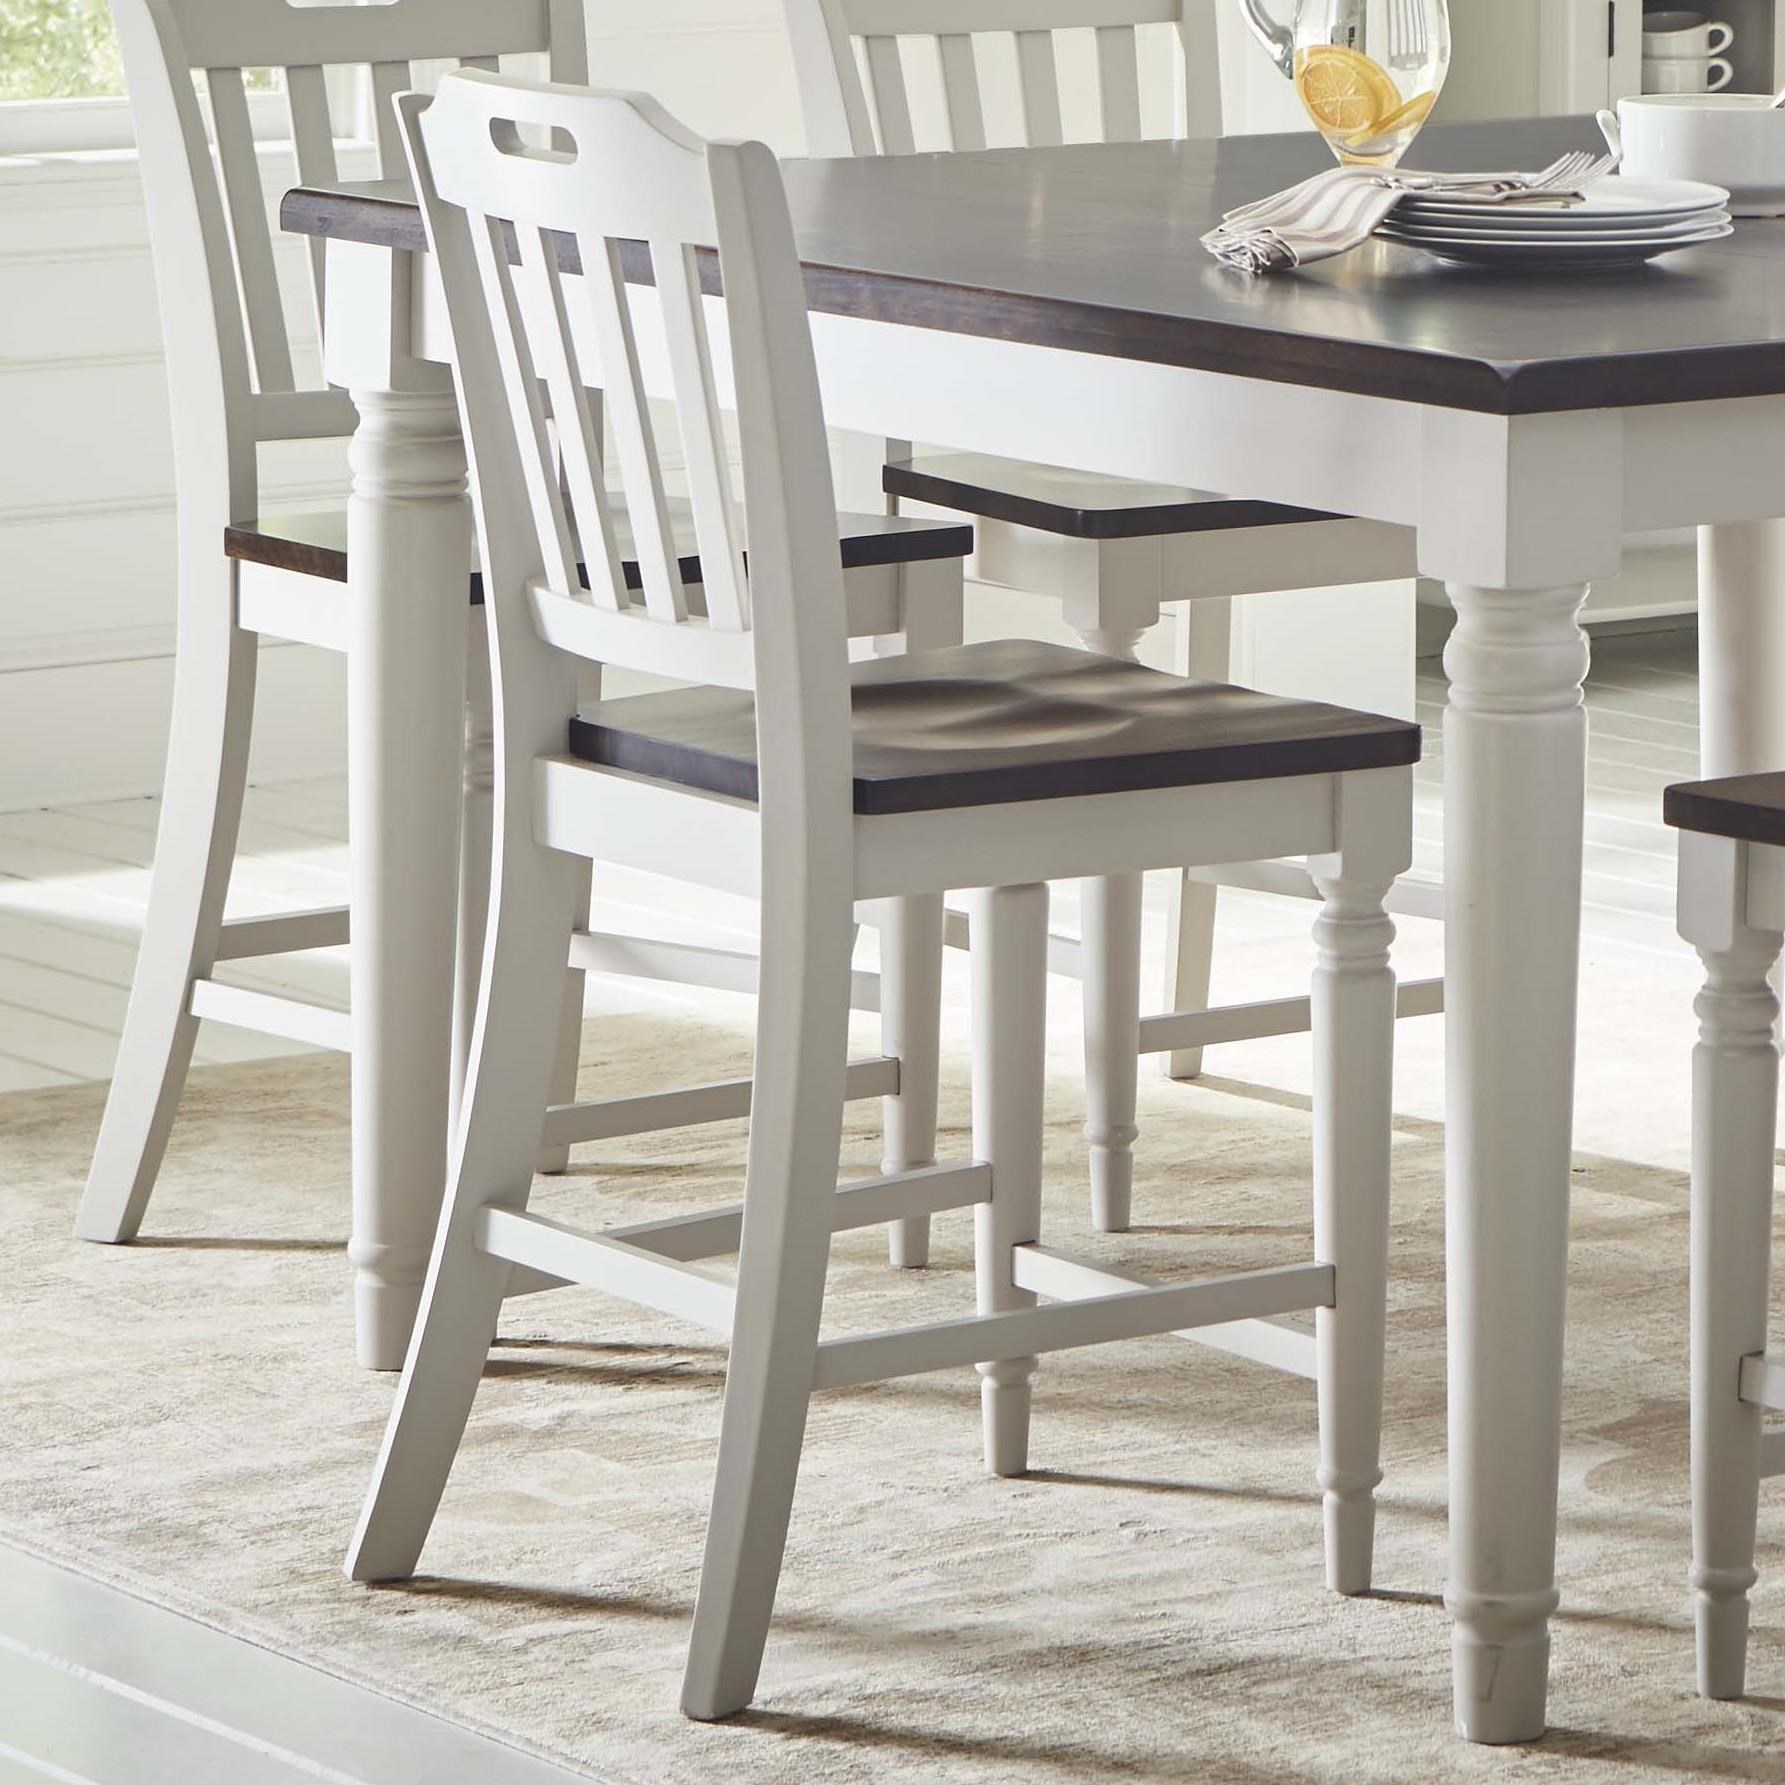 Orchard Park Slatback Counter Height Stool by Jofran at Jofran